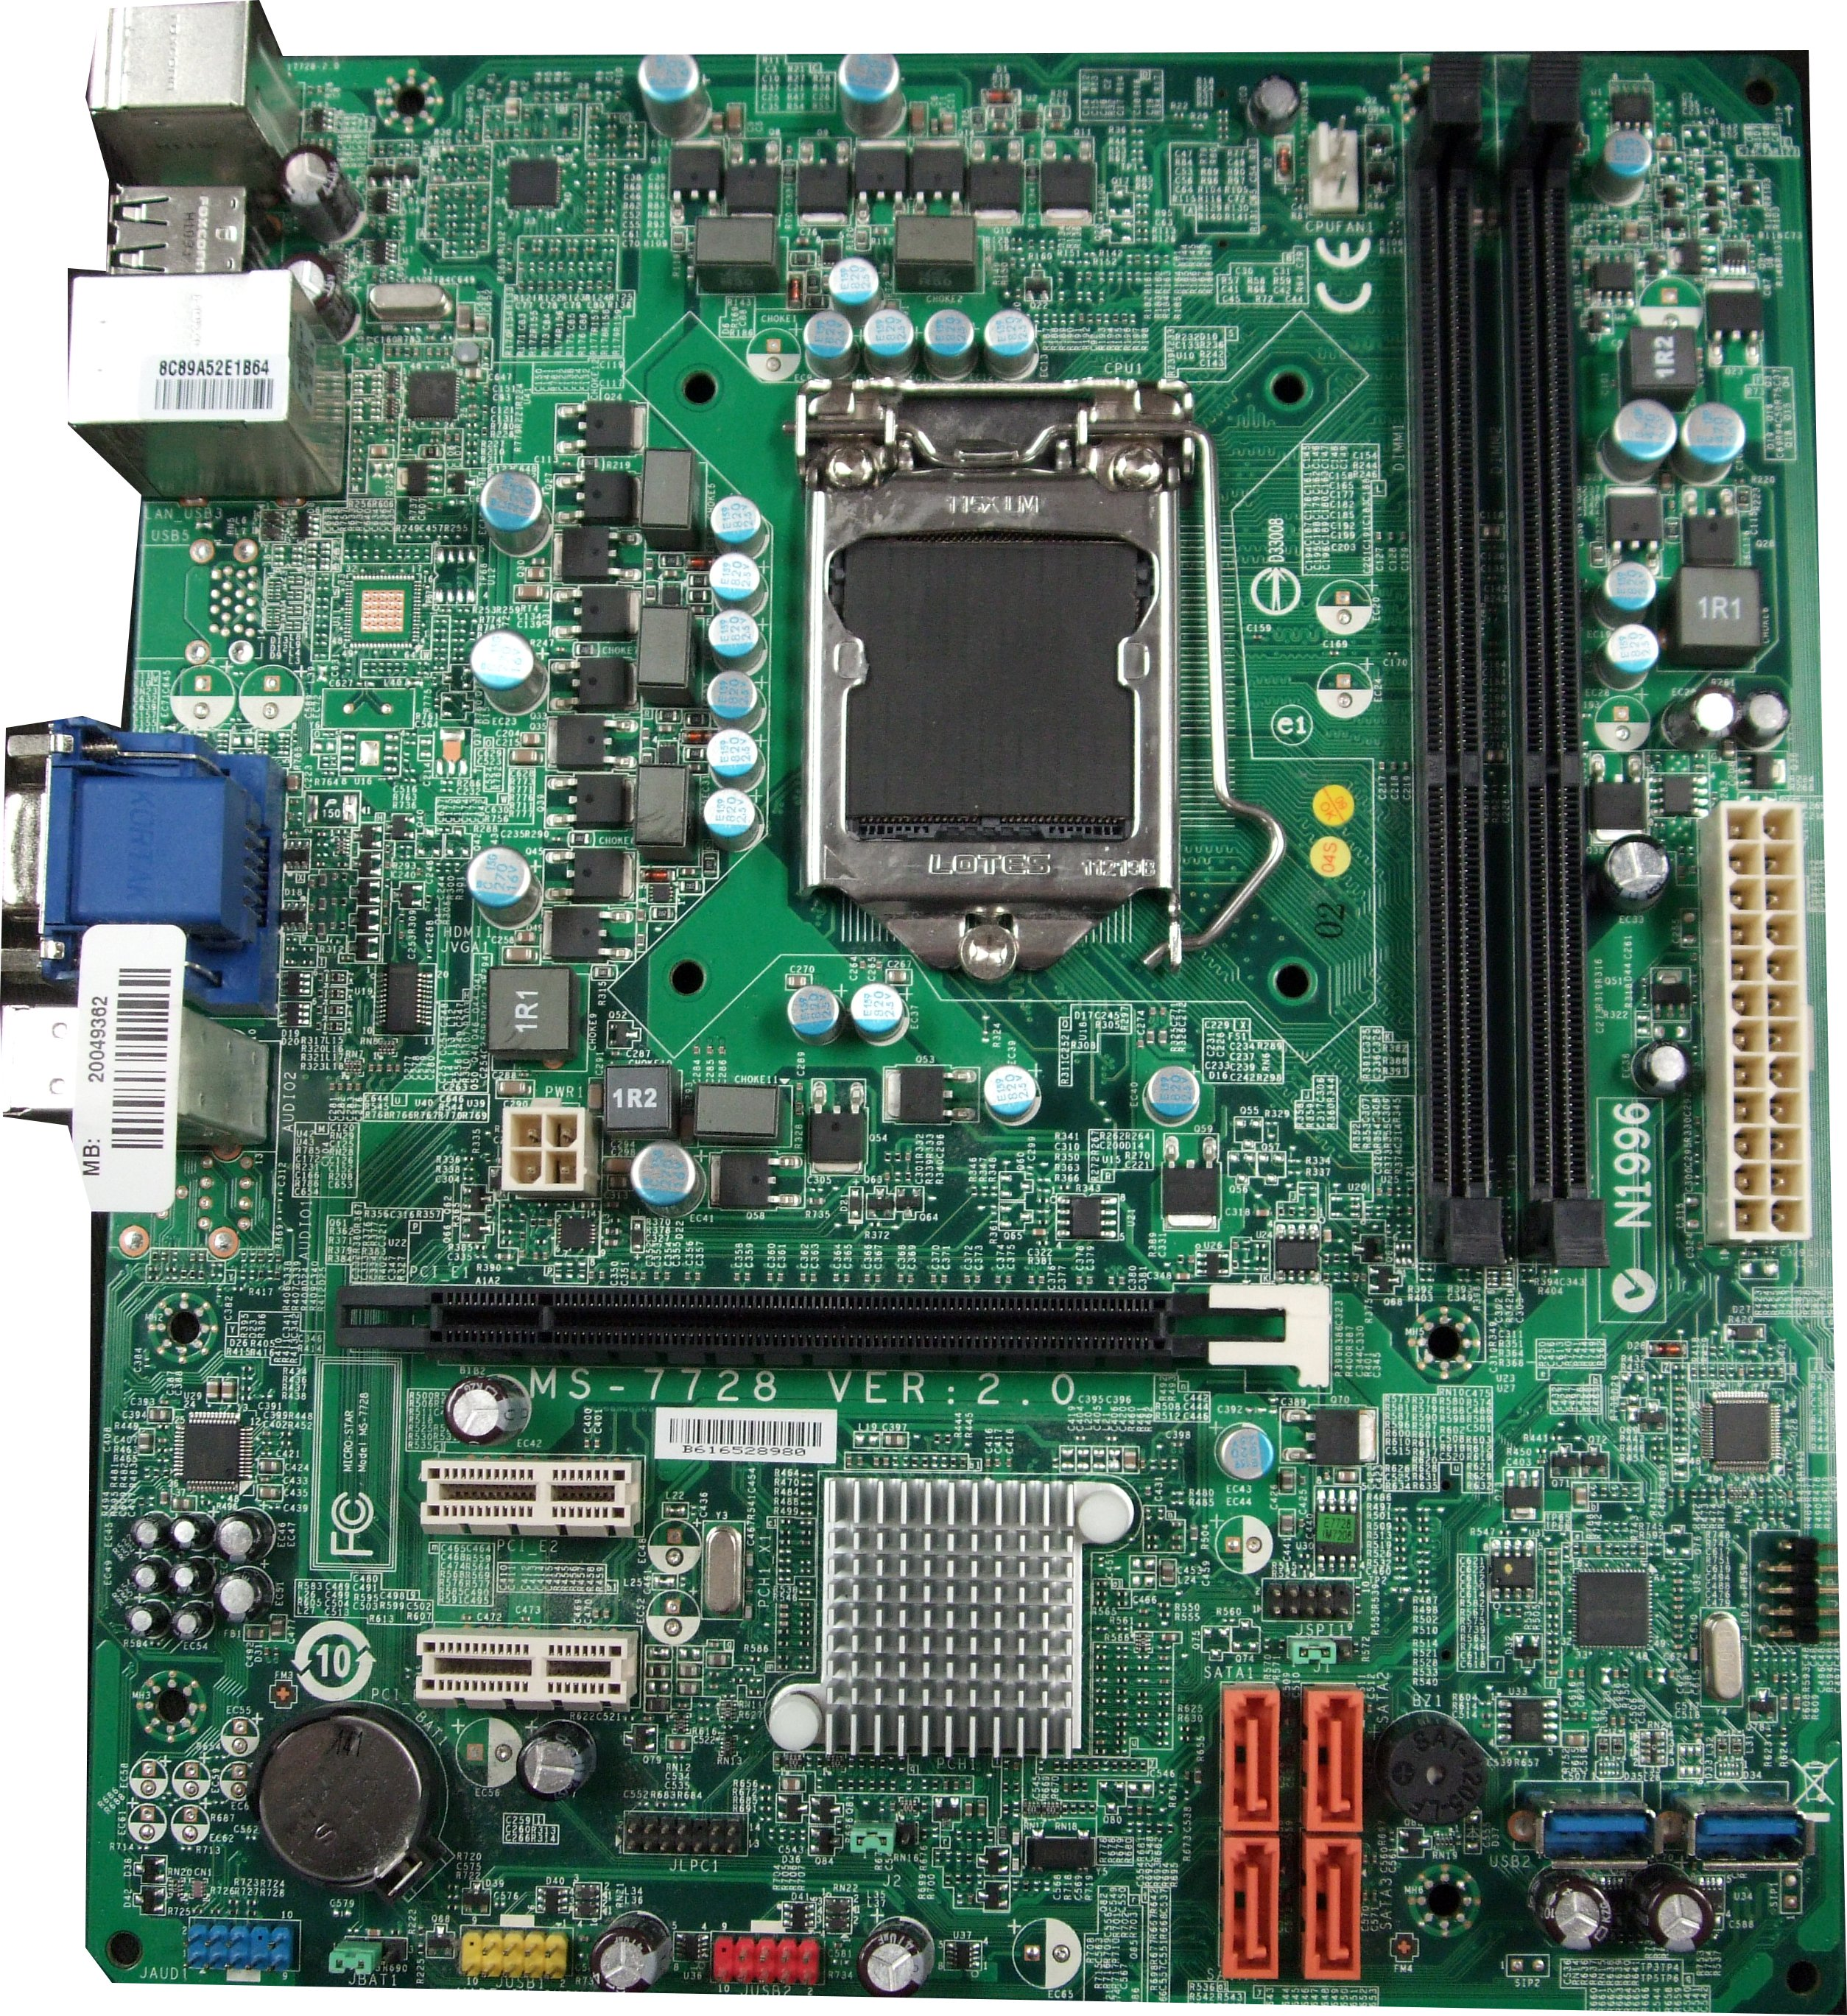 Motherboard Diagram Dell Xps 8900 furthermore Watch besides B009UPAQ6Y likewise Desktop Motherboard Wiring Diagram likewise Dell Xps 710 Price Wiring Diagrams. on dell xps 8700 specs